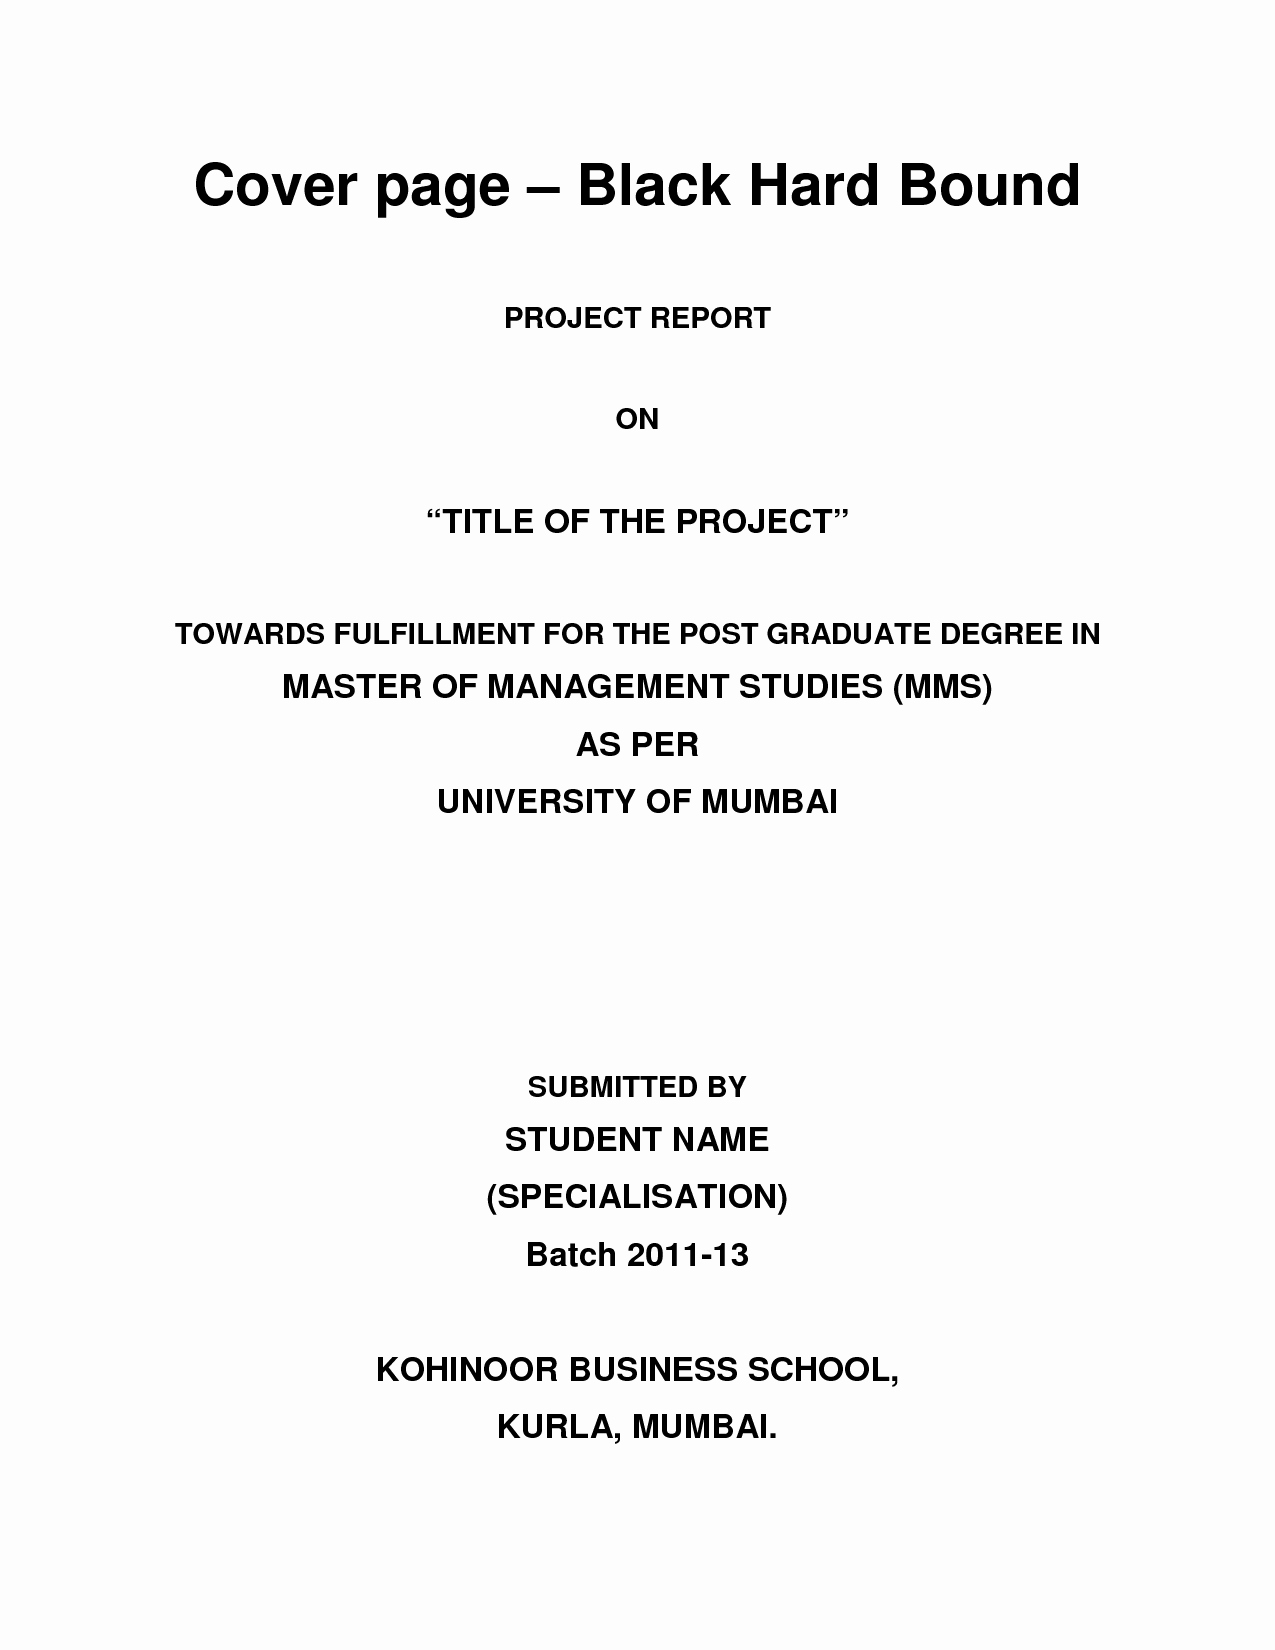 Cover Page for A Report Best Of Example Academic Report Writing format & Line Essays